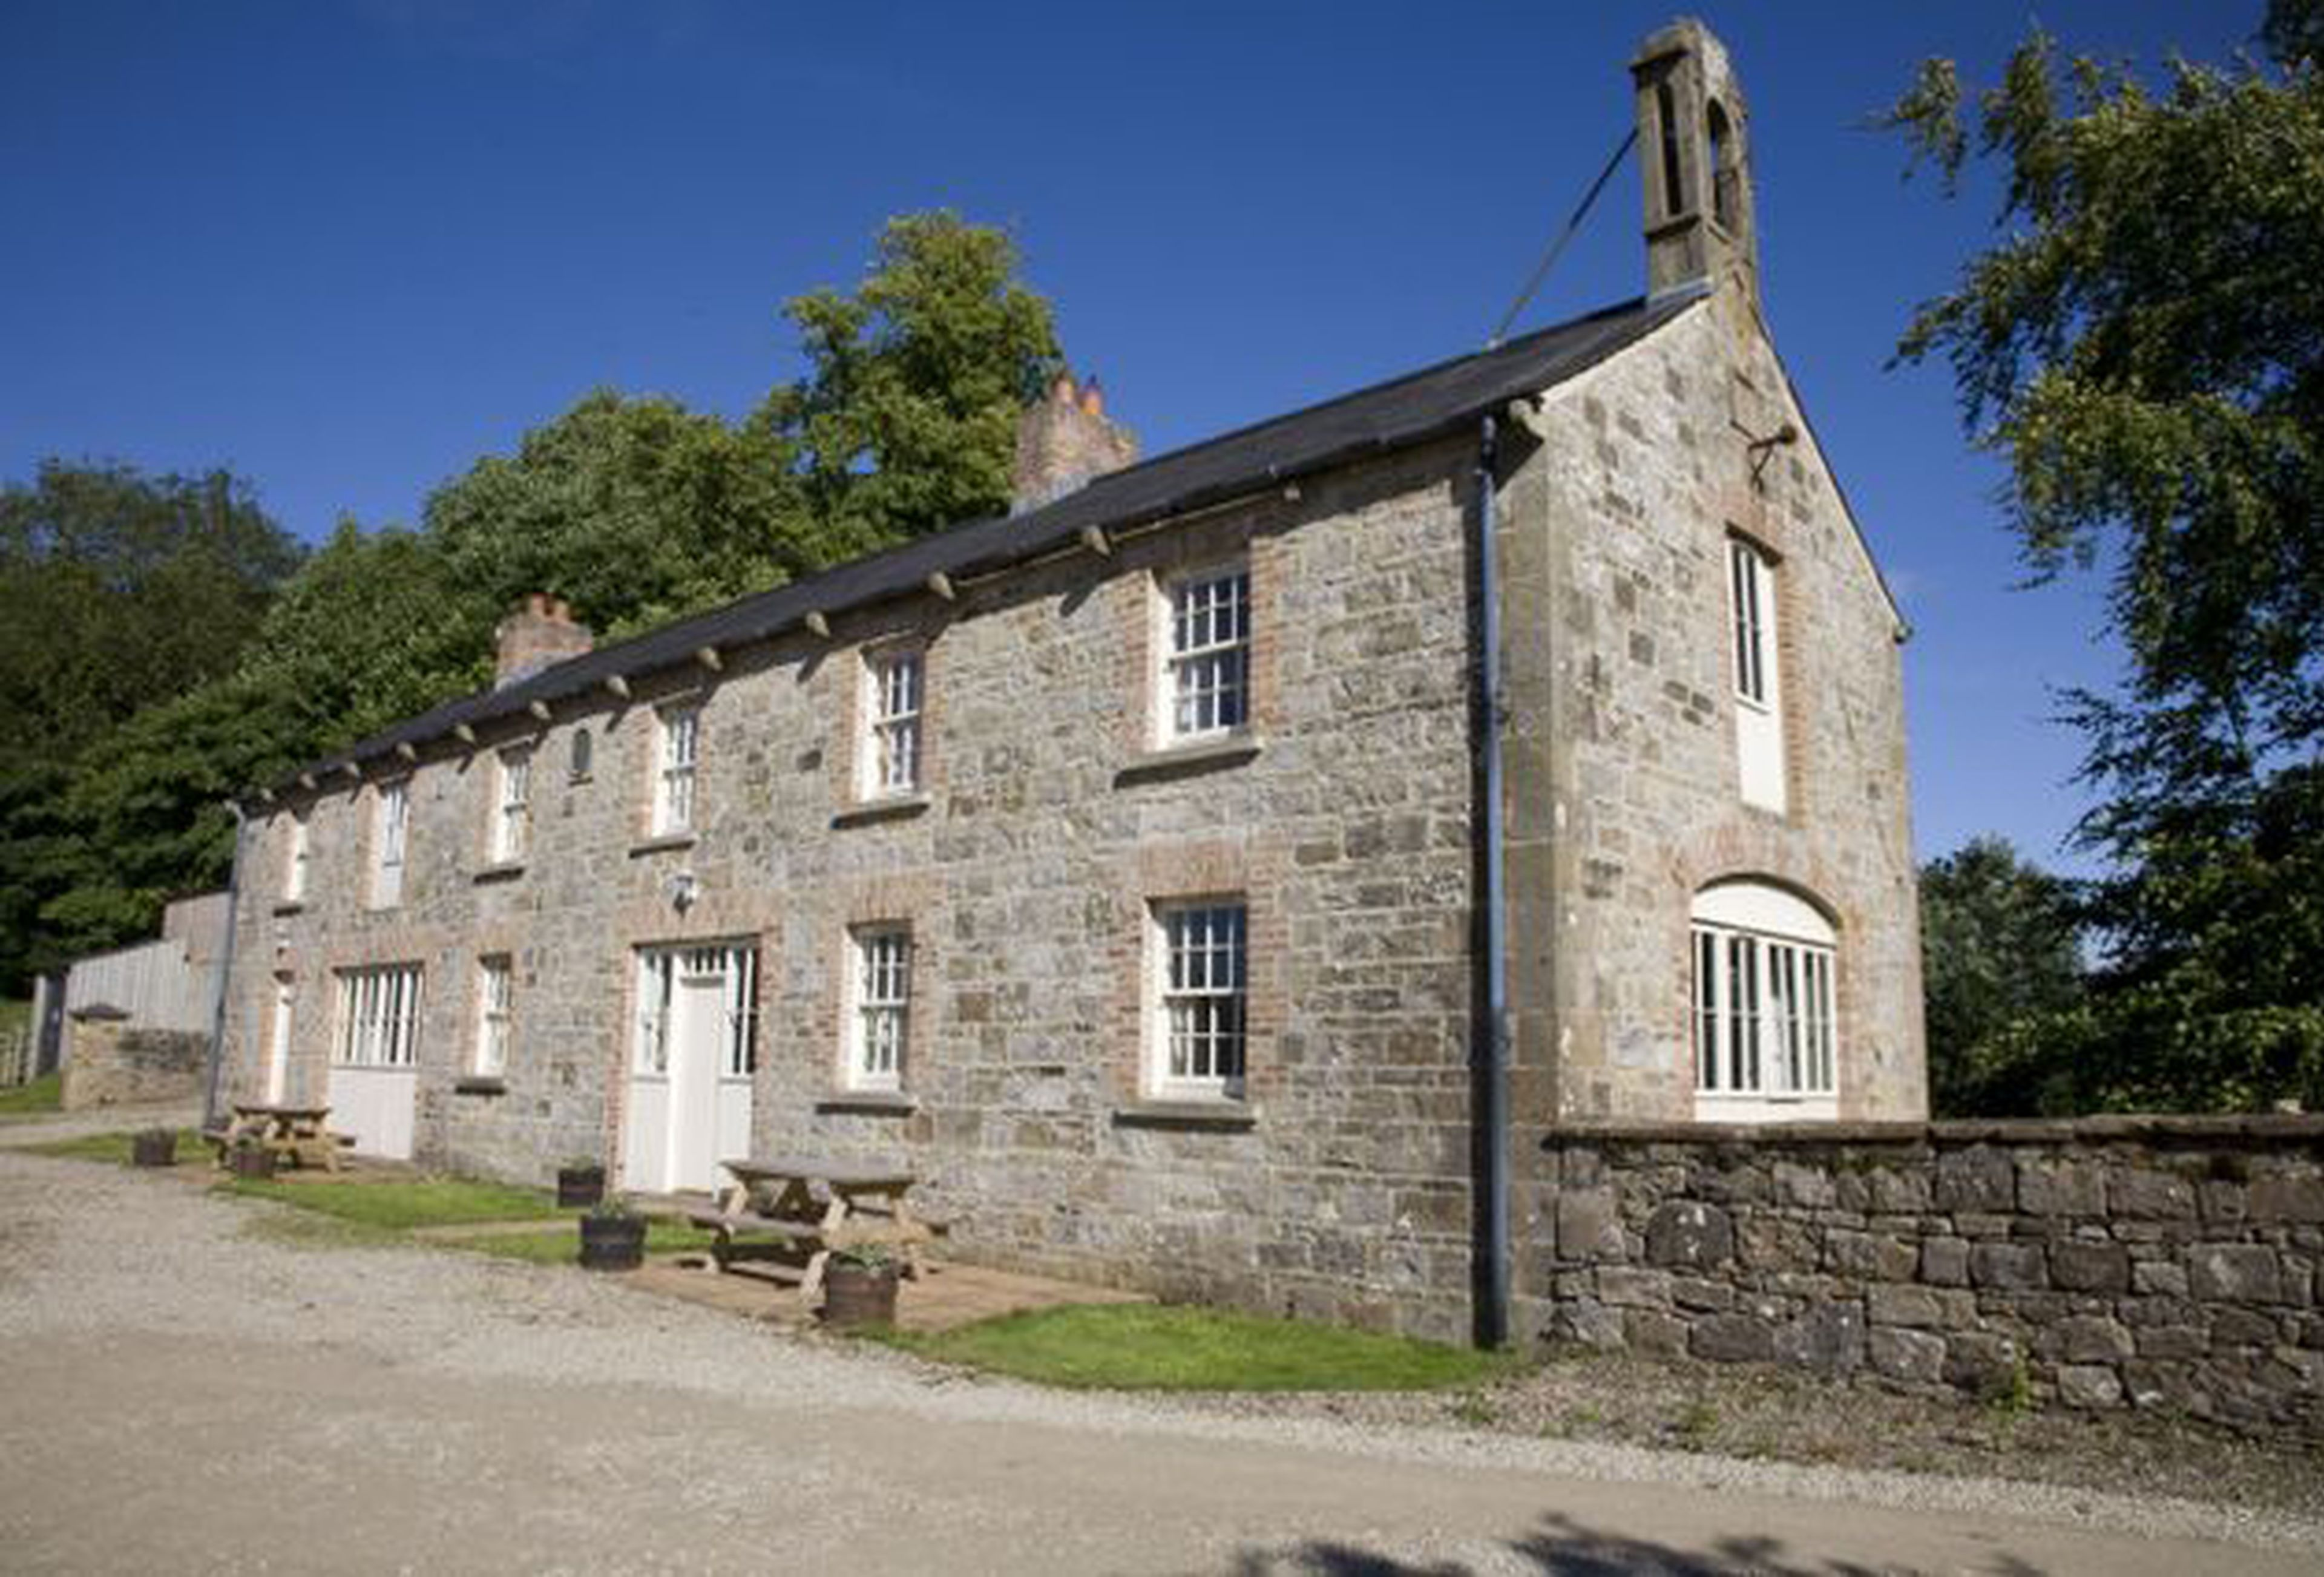 cornwall within cottage england walled s catering hse tregrehan sawday britain in coach cottages self garden